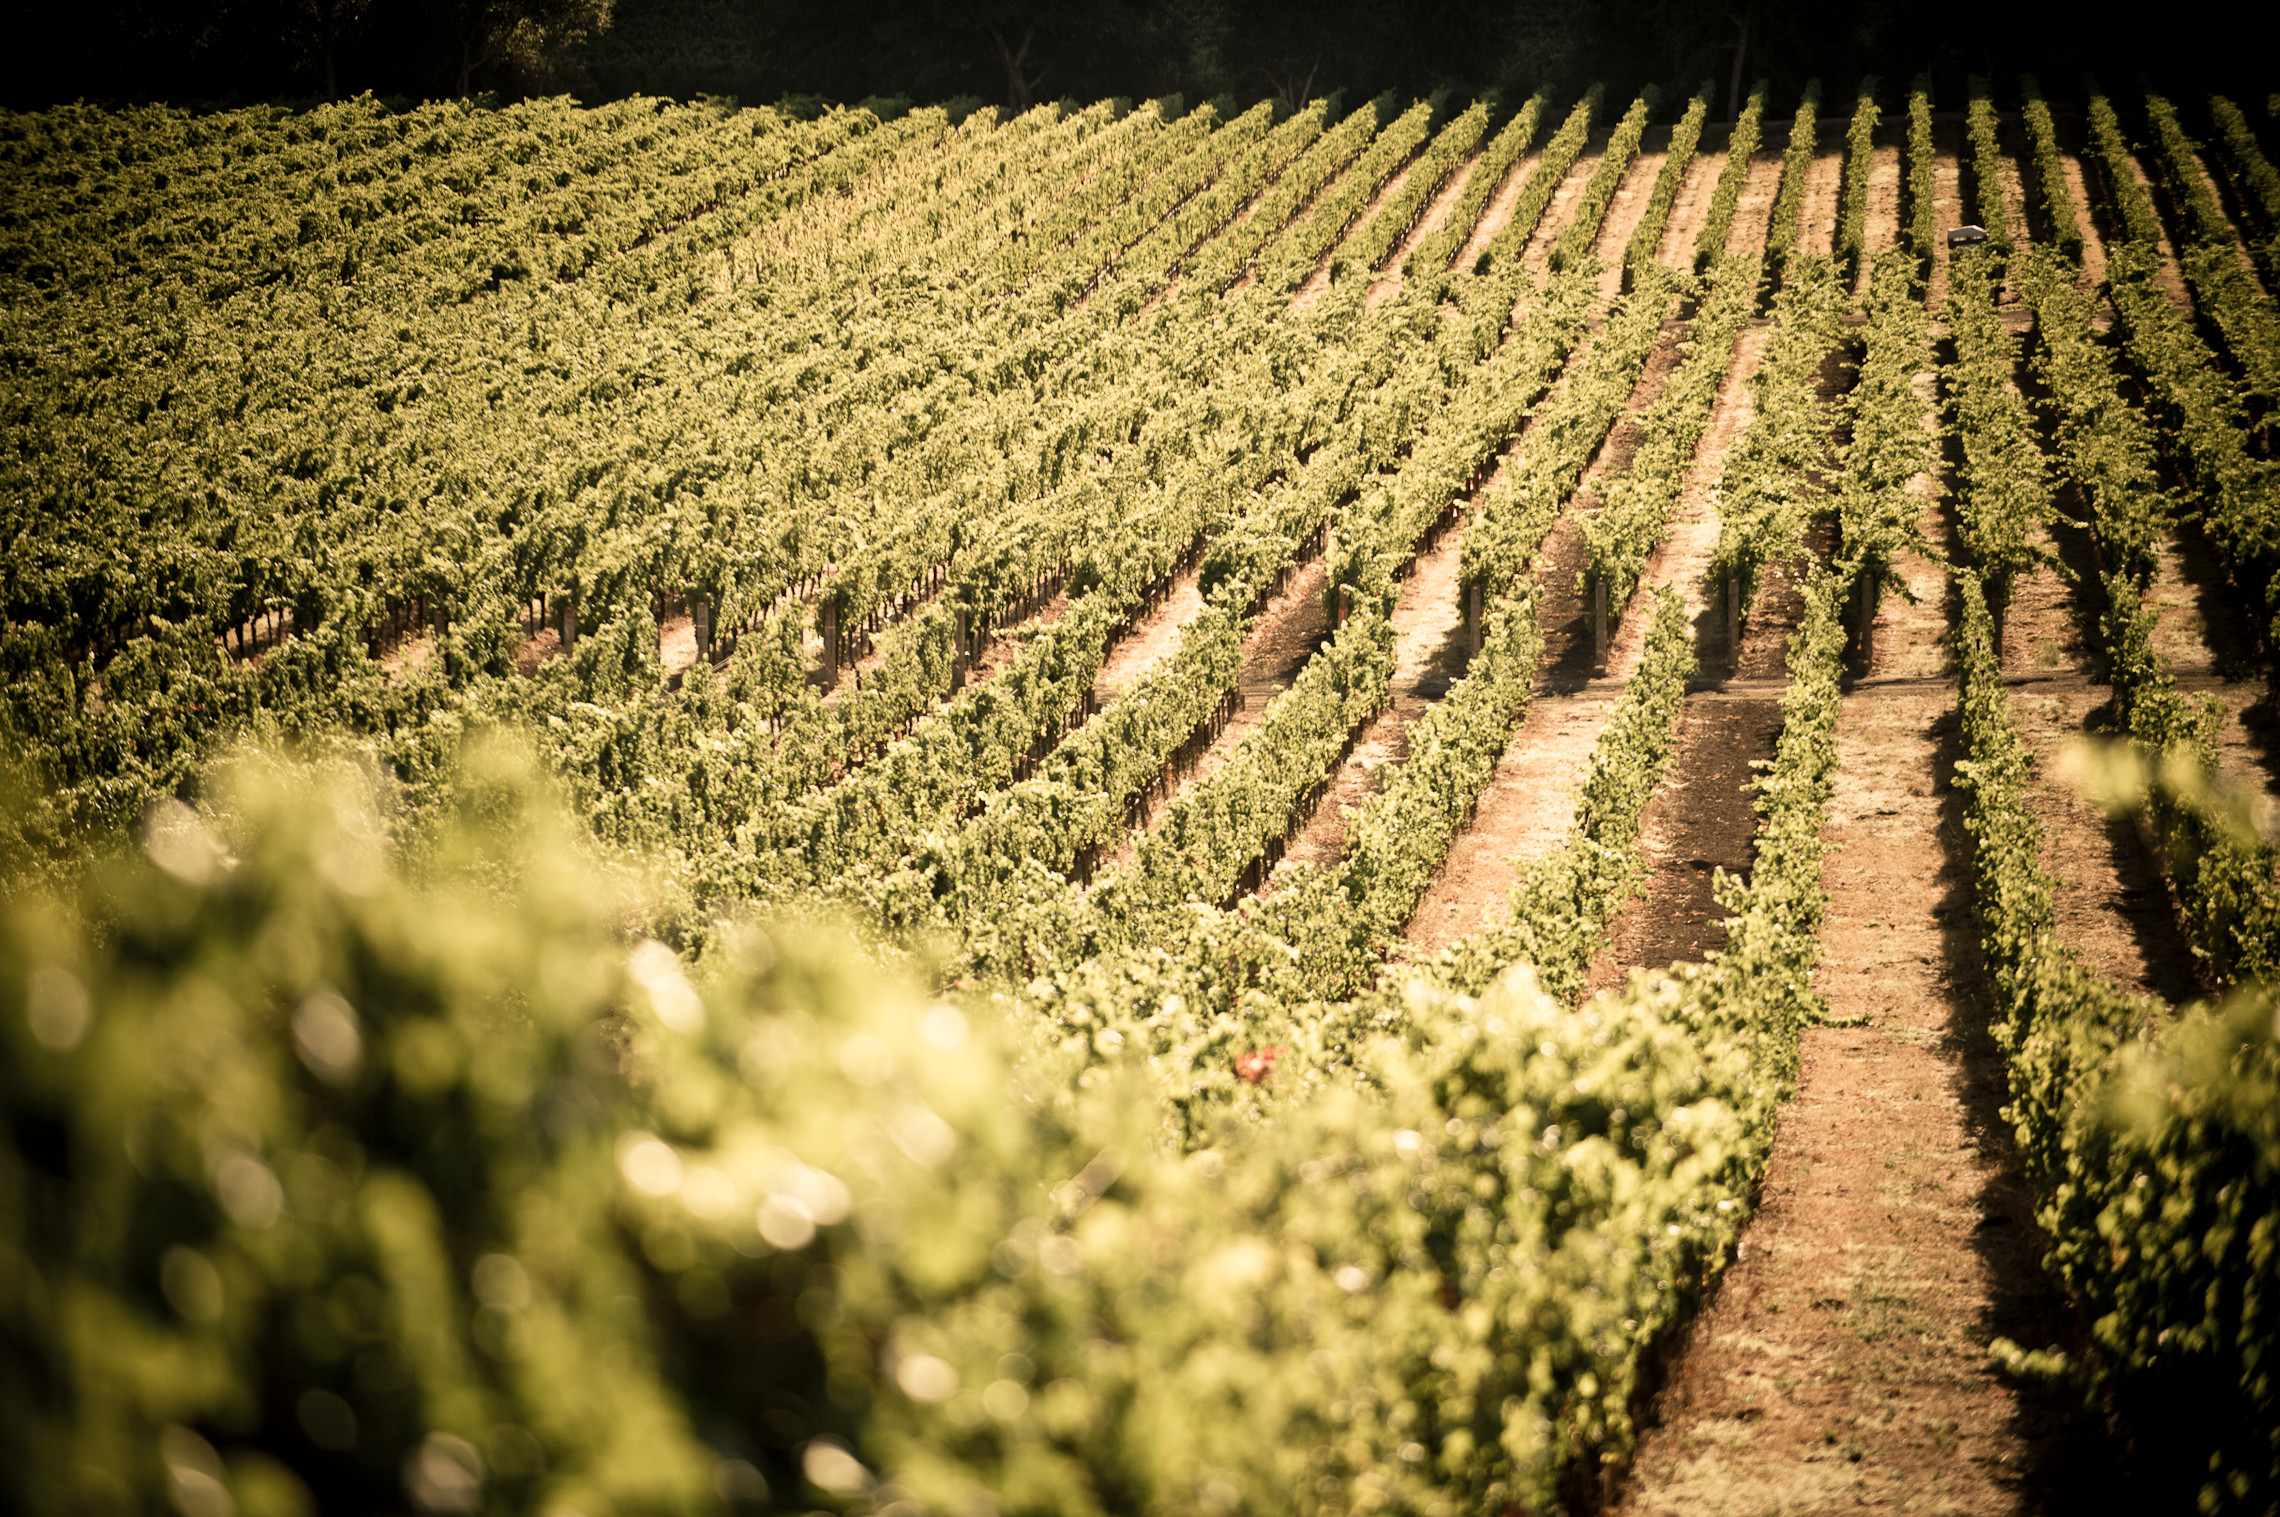 The vineyards at Stags' Leap Winery in Yountville, Calif.